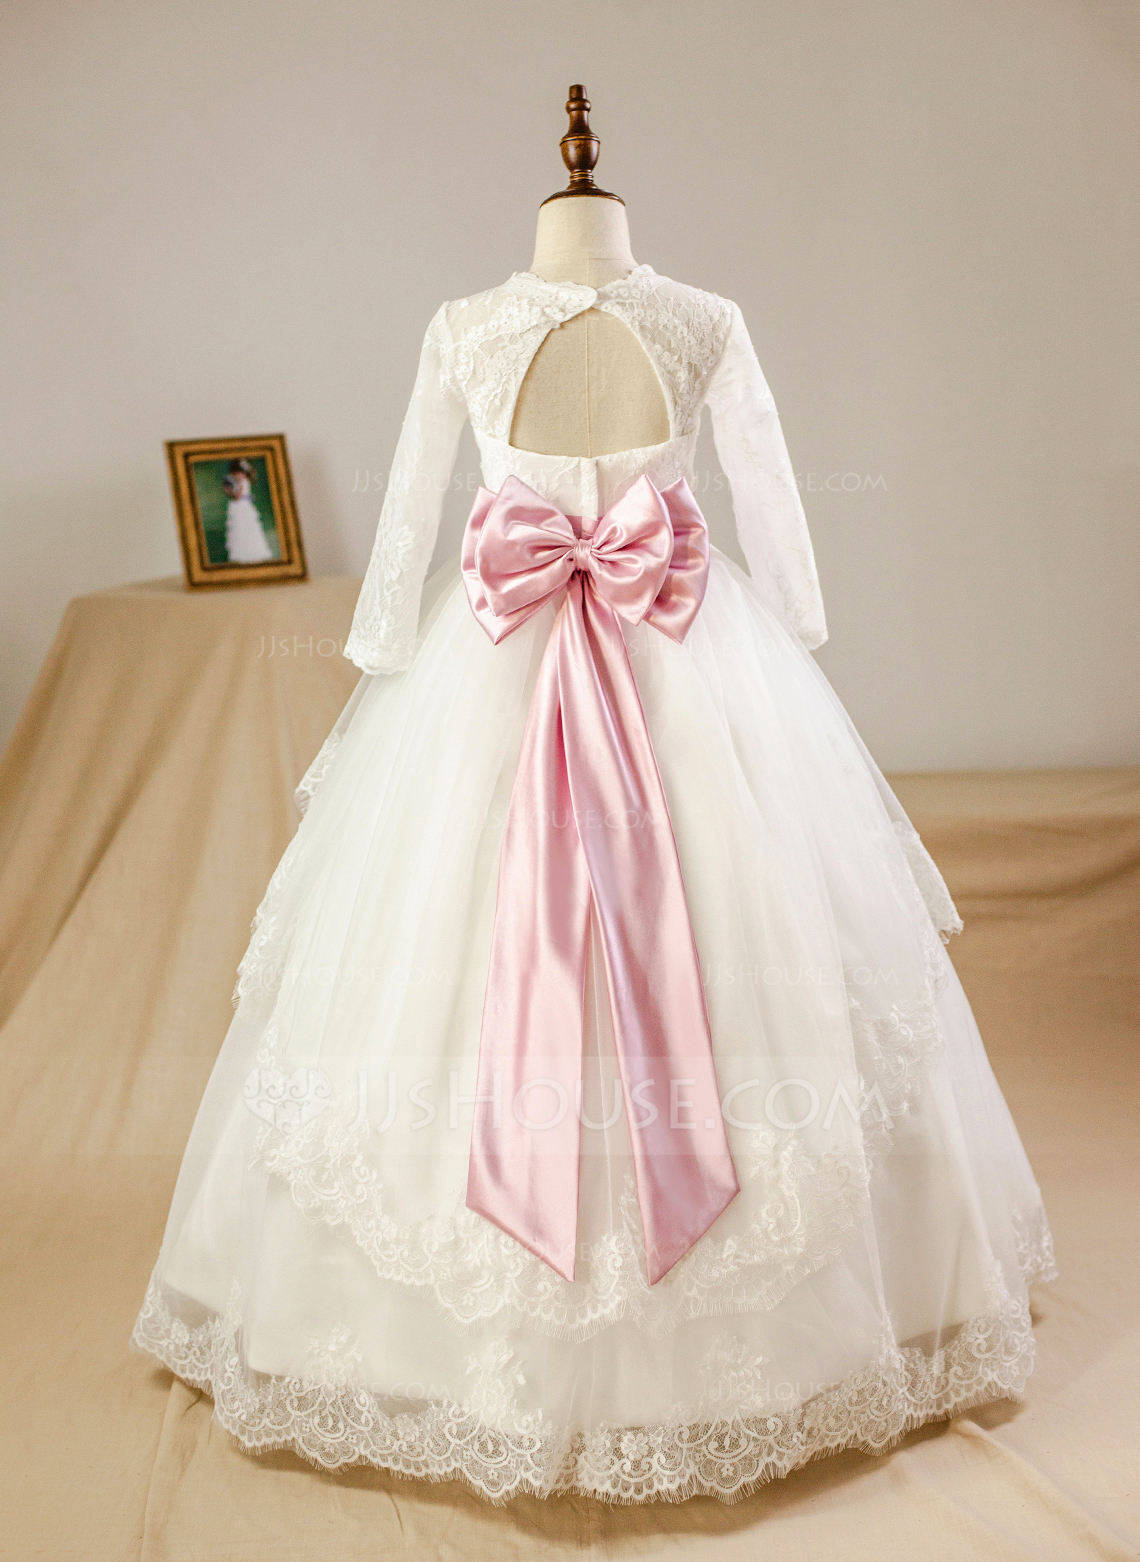 247da5a1cde3 Ball Gown Floor-length Flower Girl Dress - Satin Tulle Lace Long Sleeves  Scoop Neck With Sash Beading Bow(s) Rhinestone Back Hole (Petticoat NOT ...